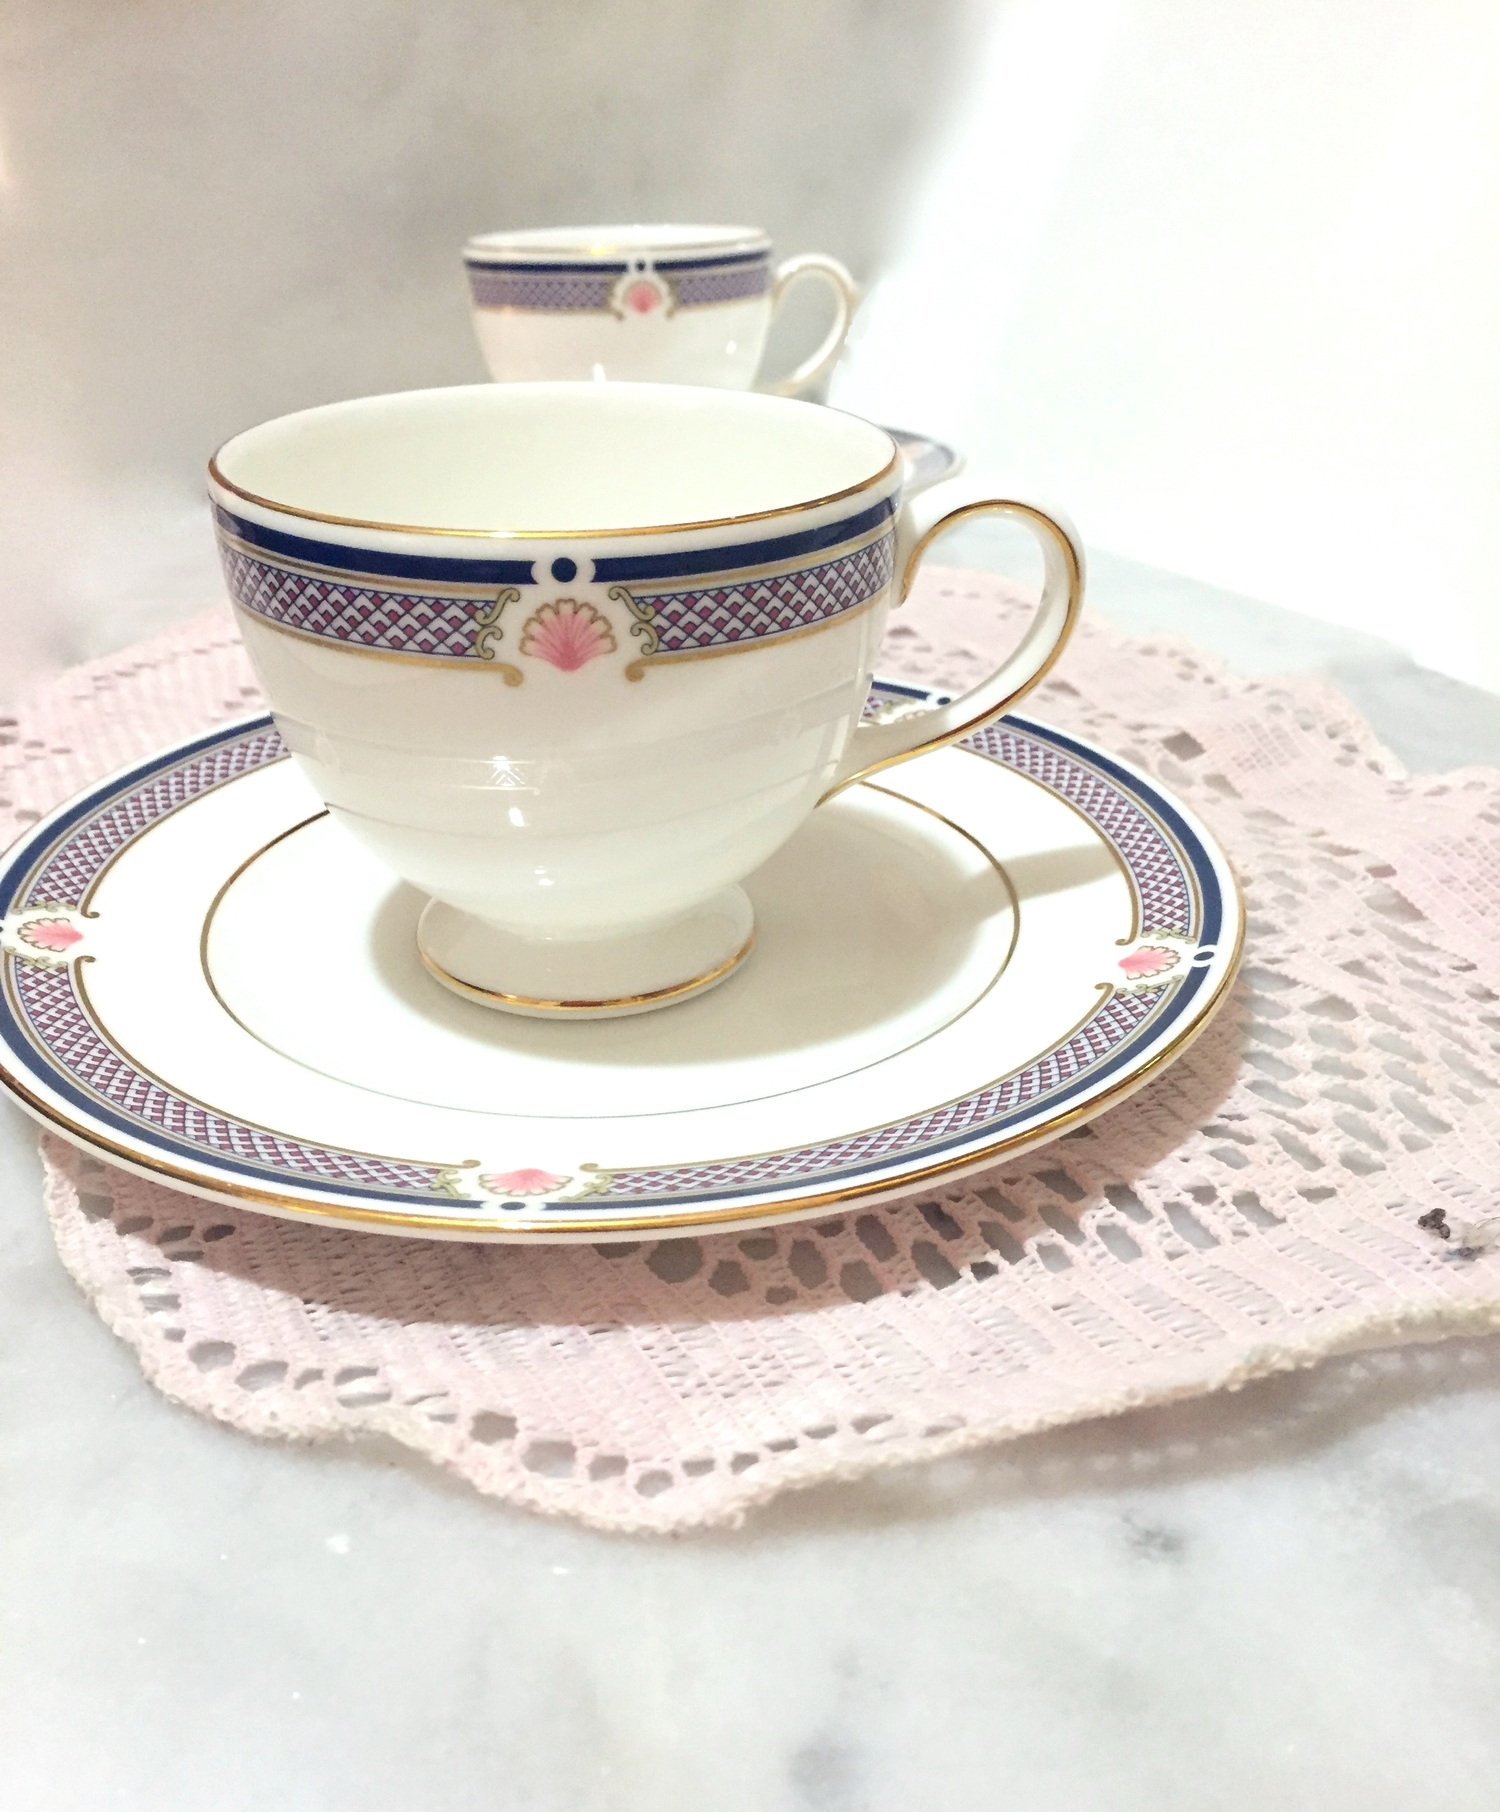 """Pouring this tea into a cute cup and saucer pair like this one will surely make the experience """"fine"""" :)"""